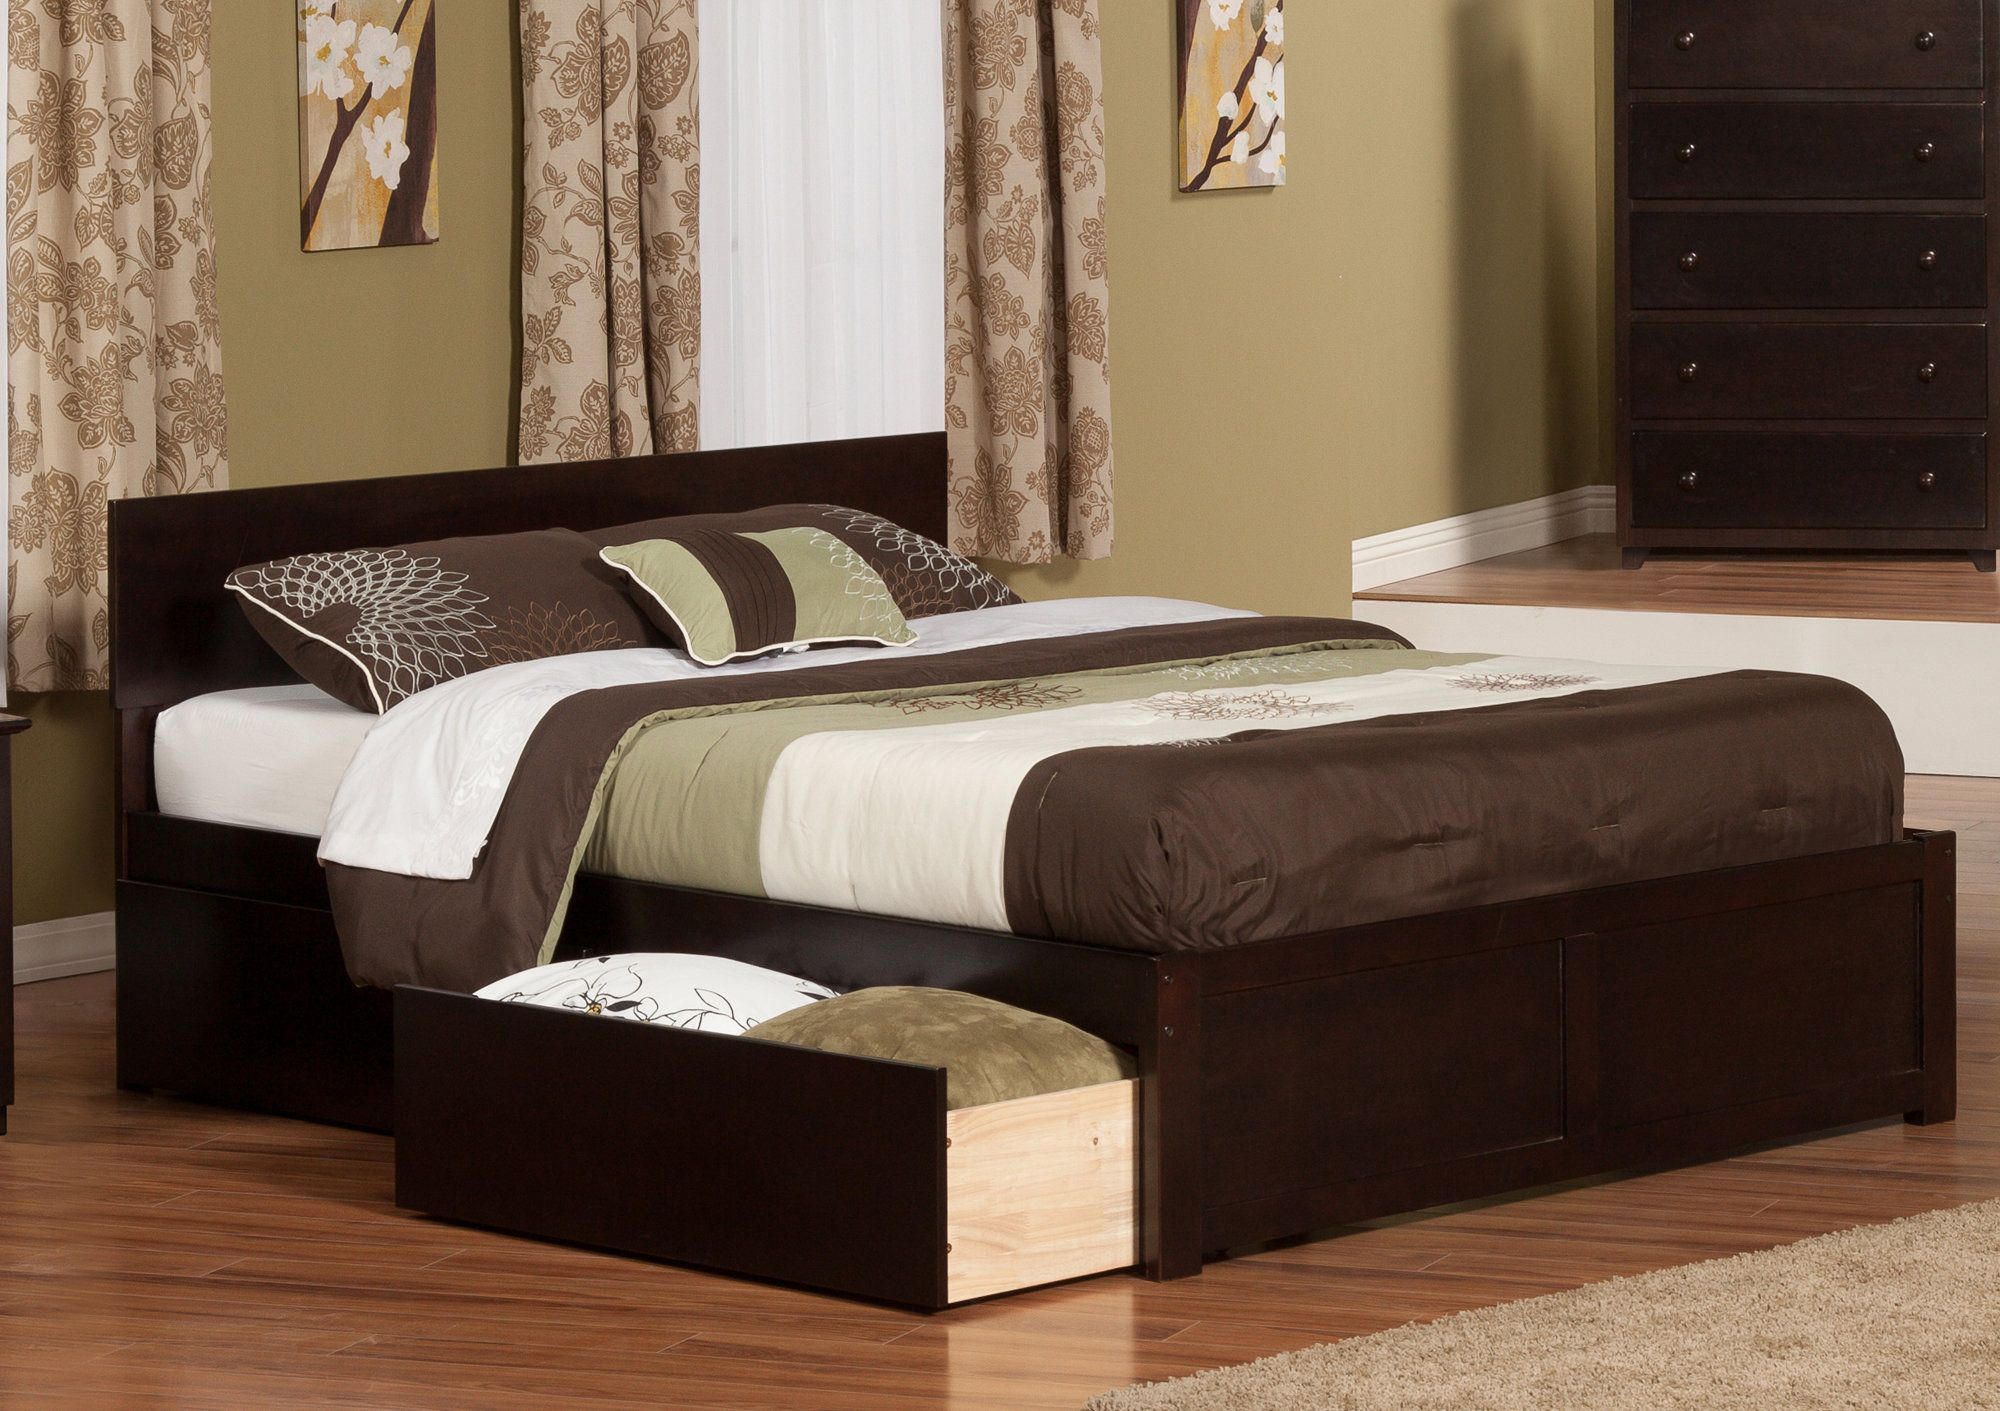 Cherry King Storage Platform Bed